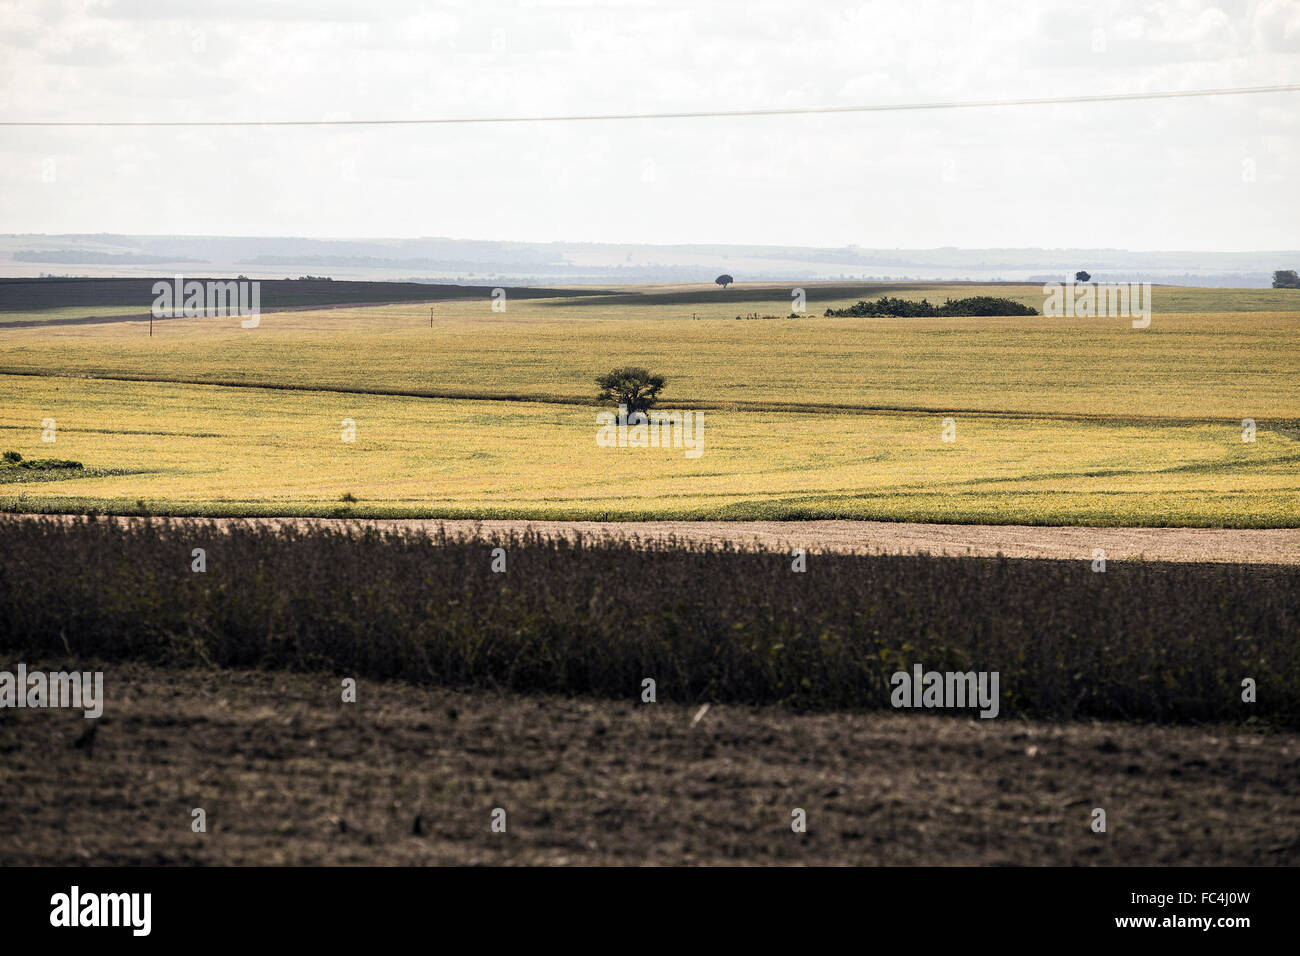 GM soy planting in the countryside - Stock Image